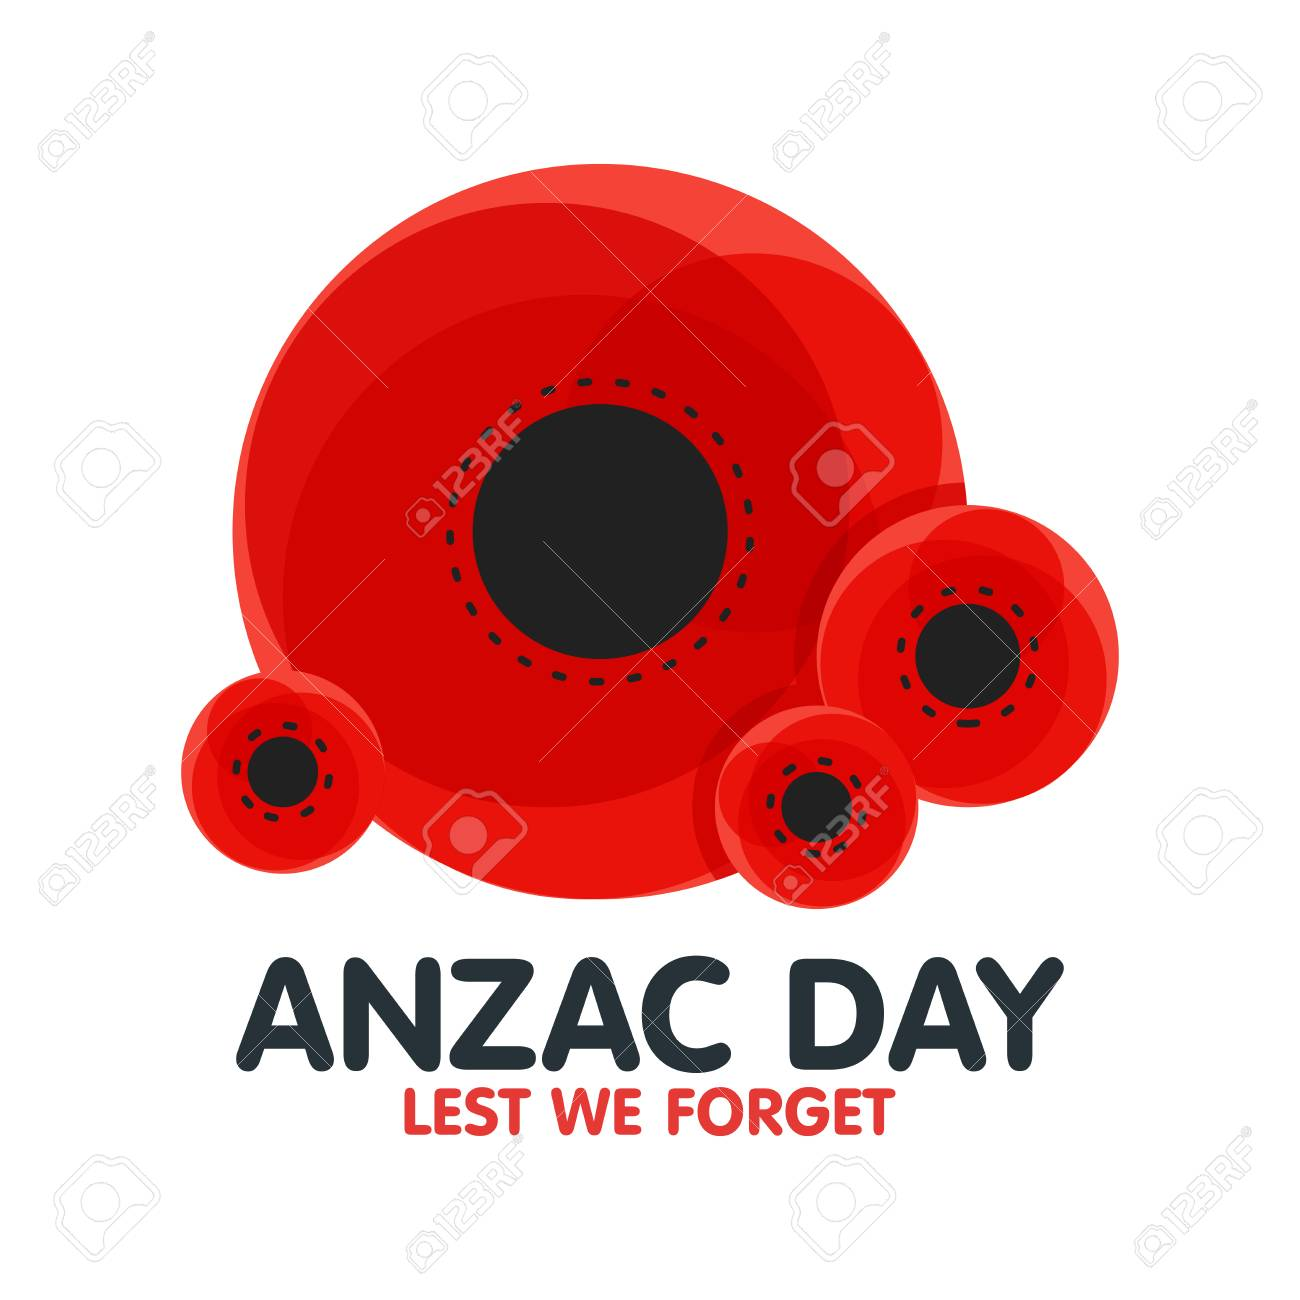 Bright poppy flower remembrance day symbol anzac day in australia bright poppy flower remembrance day symbol anzac day in australia lest we forget mightylinksfo